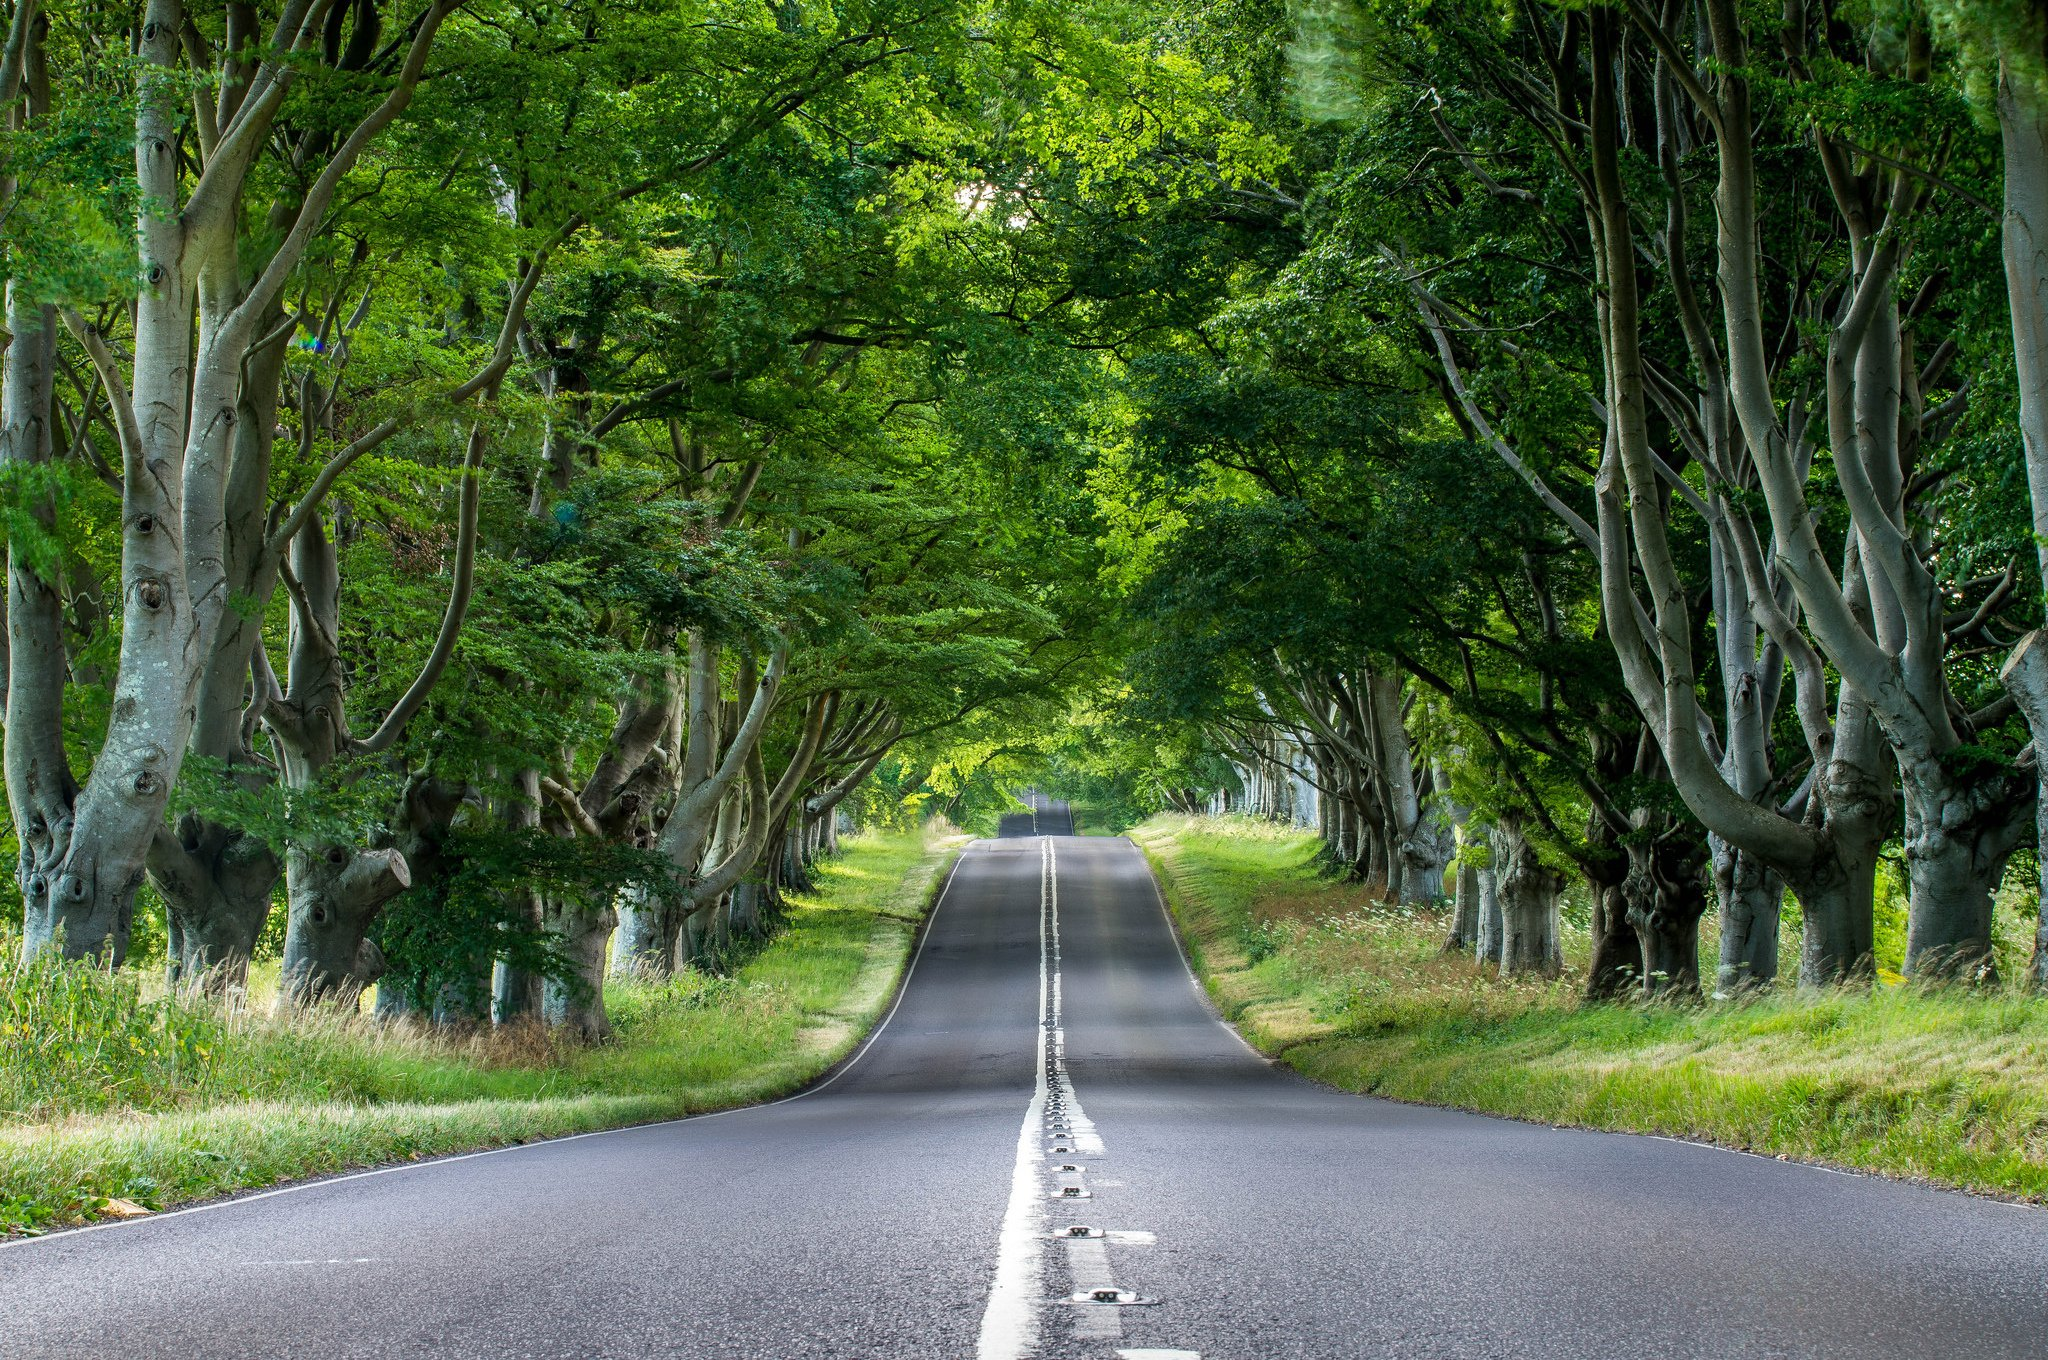 Road Landscape Wallpapers - THIS Wallpaper